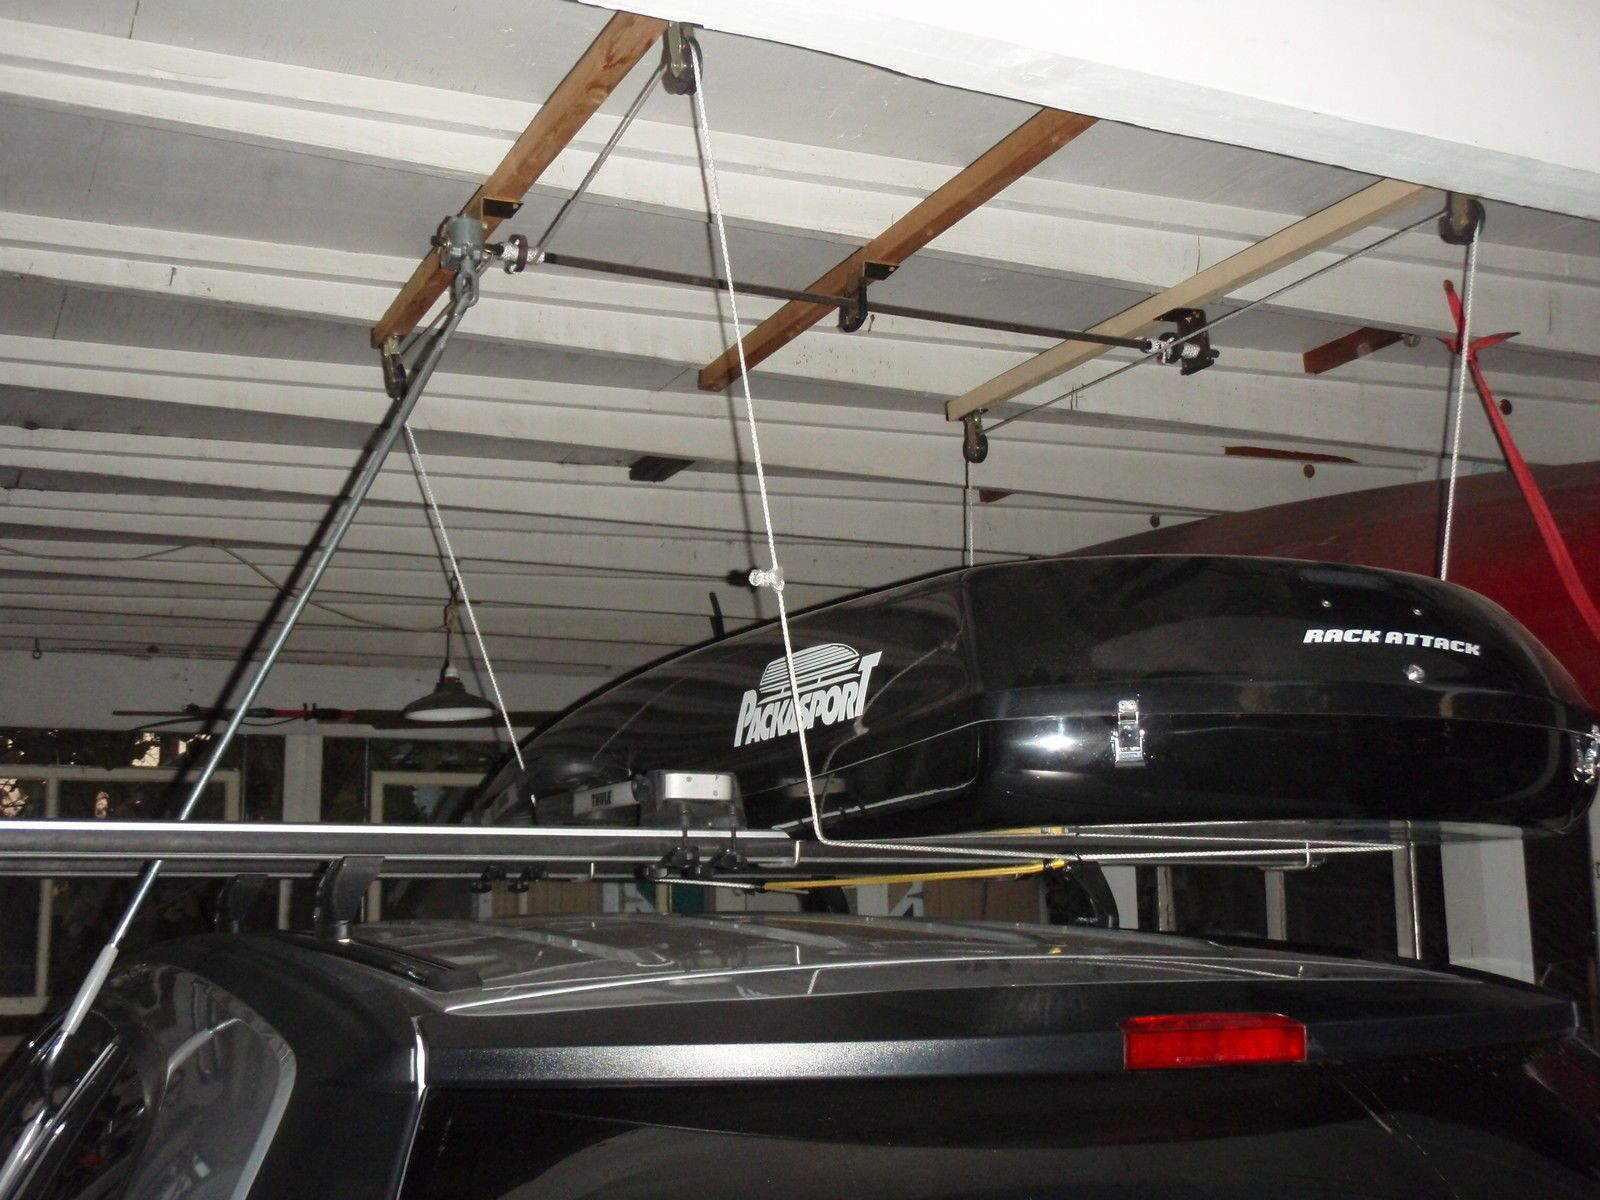 roof box garage hanging - Google Search & roof box garage hanging - Google Search | roof box hanging | Pinterest